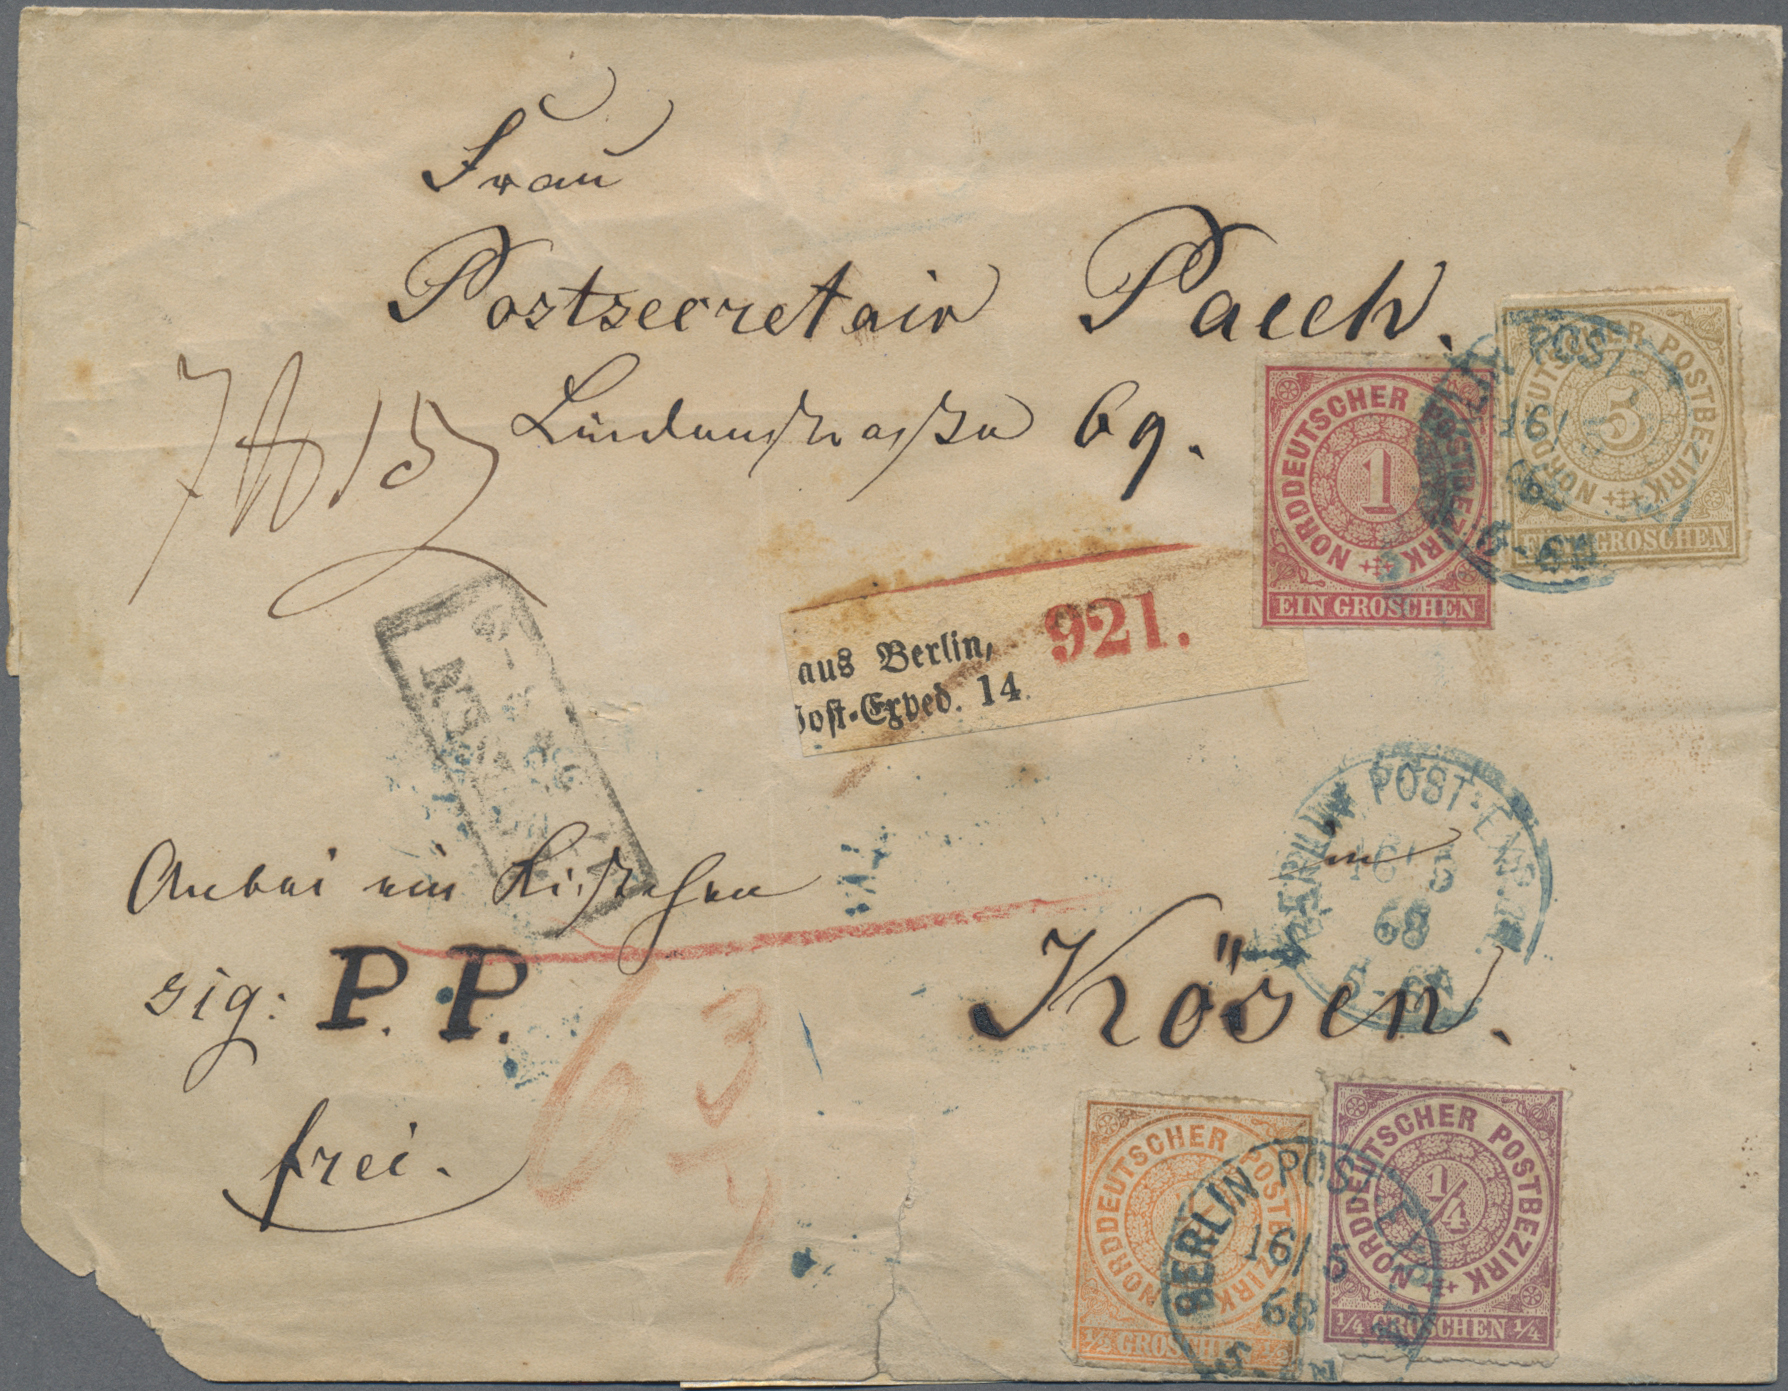 Lot 27343 - nachlässe  -  Auktionshaus Christoph Gärtner GmbH & Co. KG Sale #46 Gollcetions Germany - including the suplement